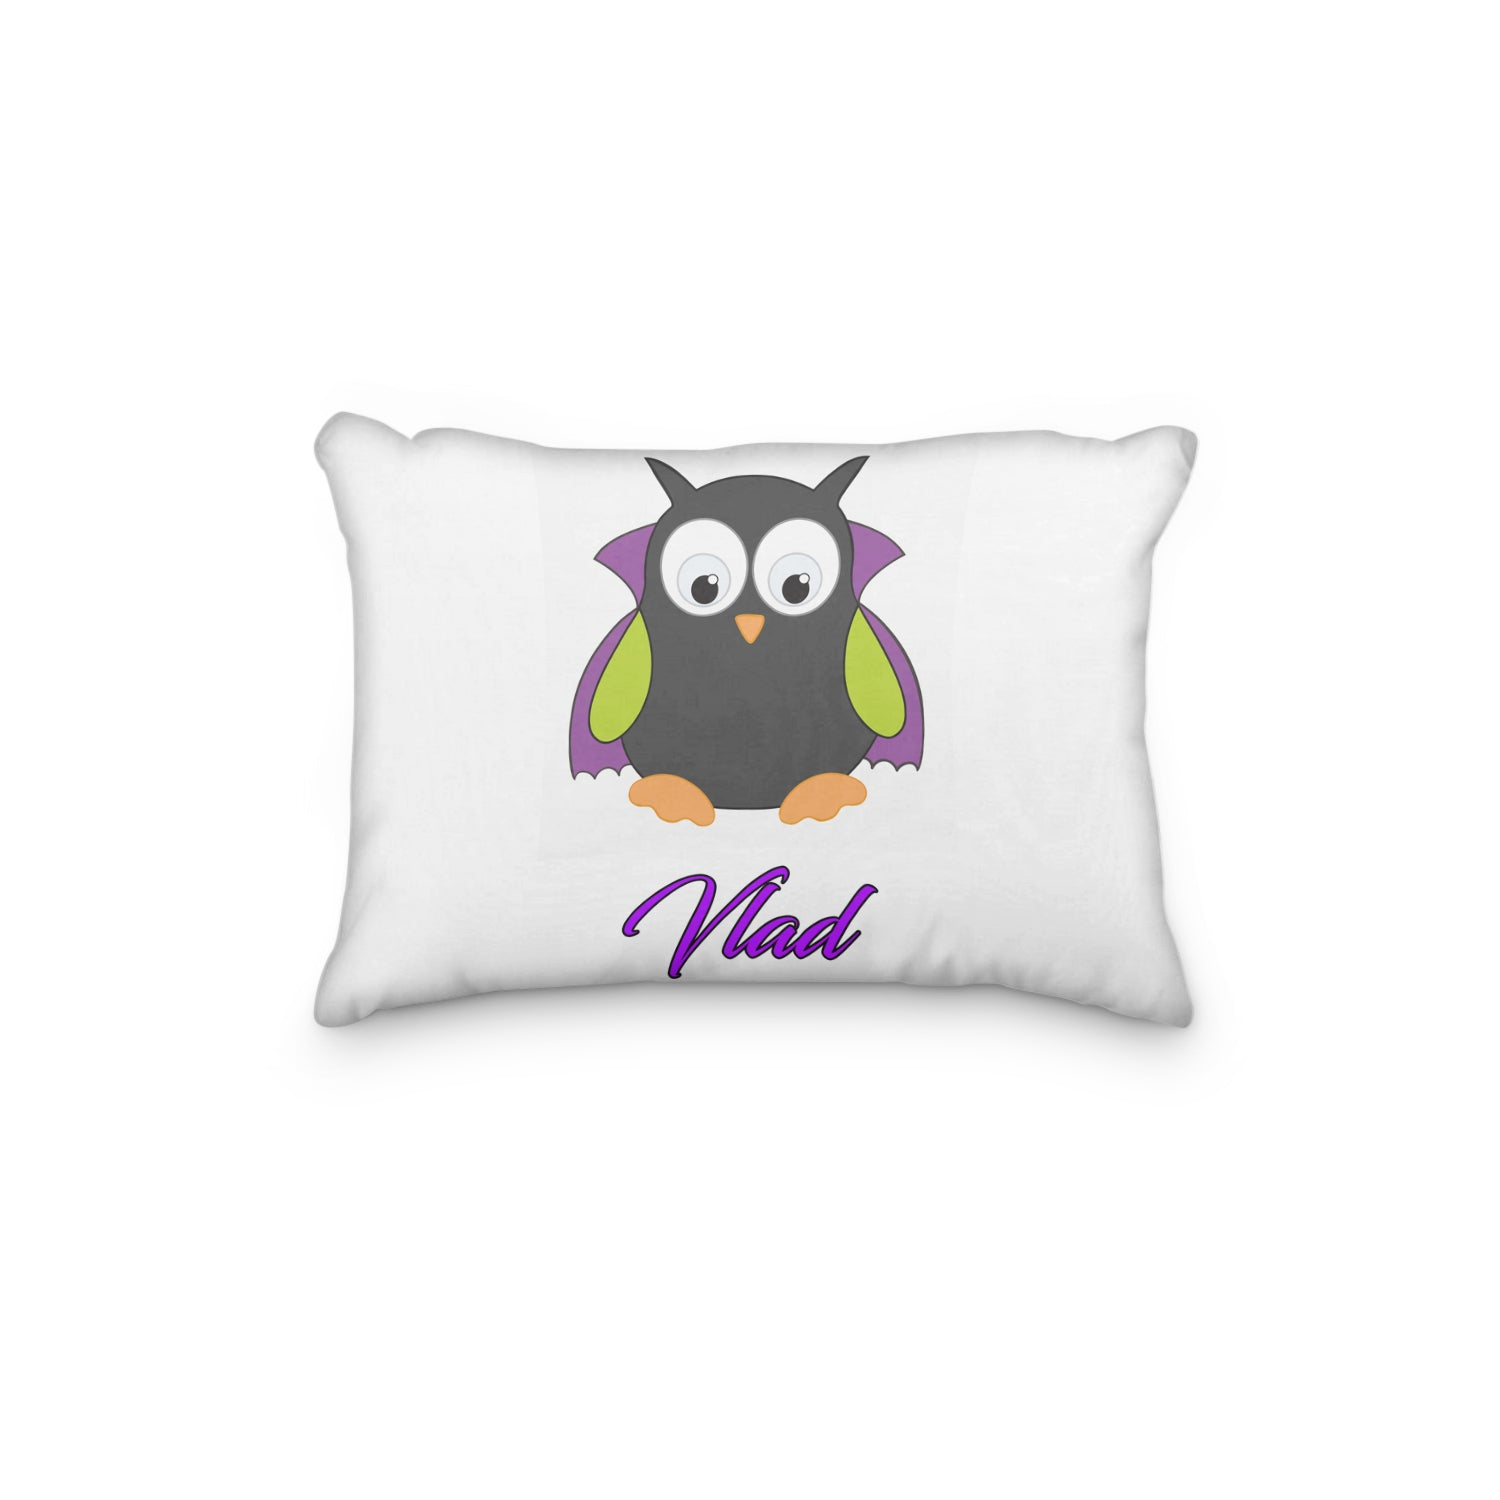 Owl Vampire with Cape Personalized Pillowcase - Incandescently - Glitter Sparkle Throw Pillows - Farmhouse Decor